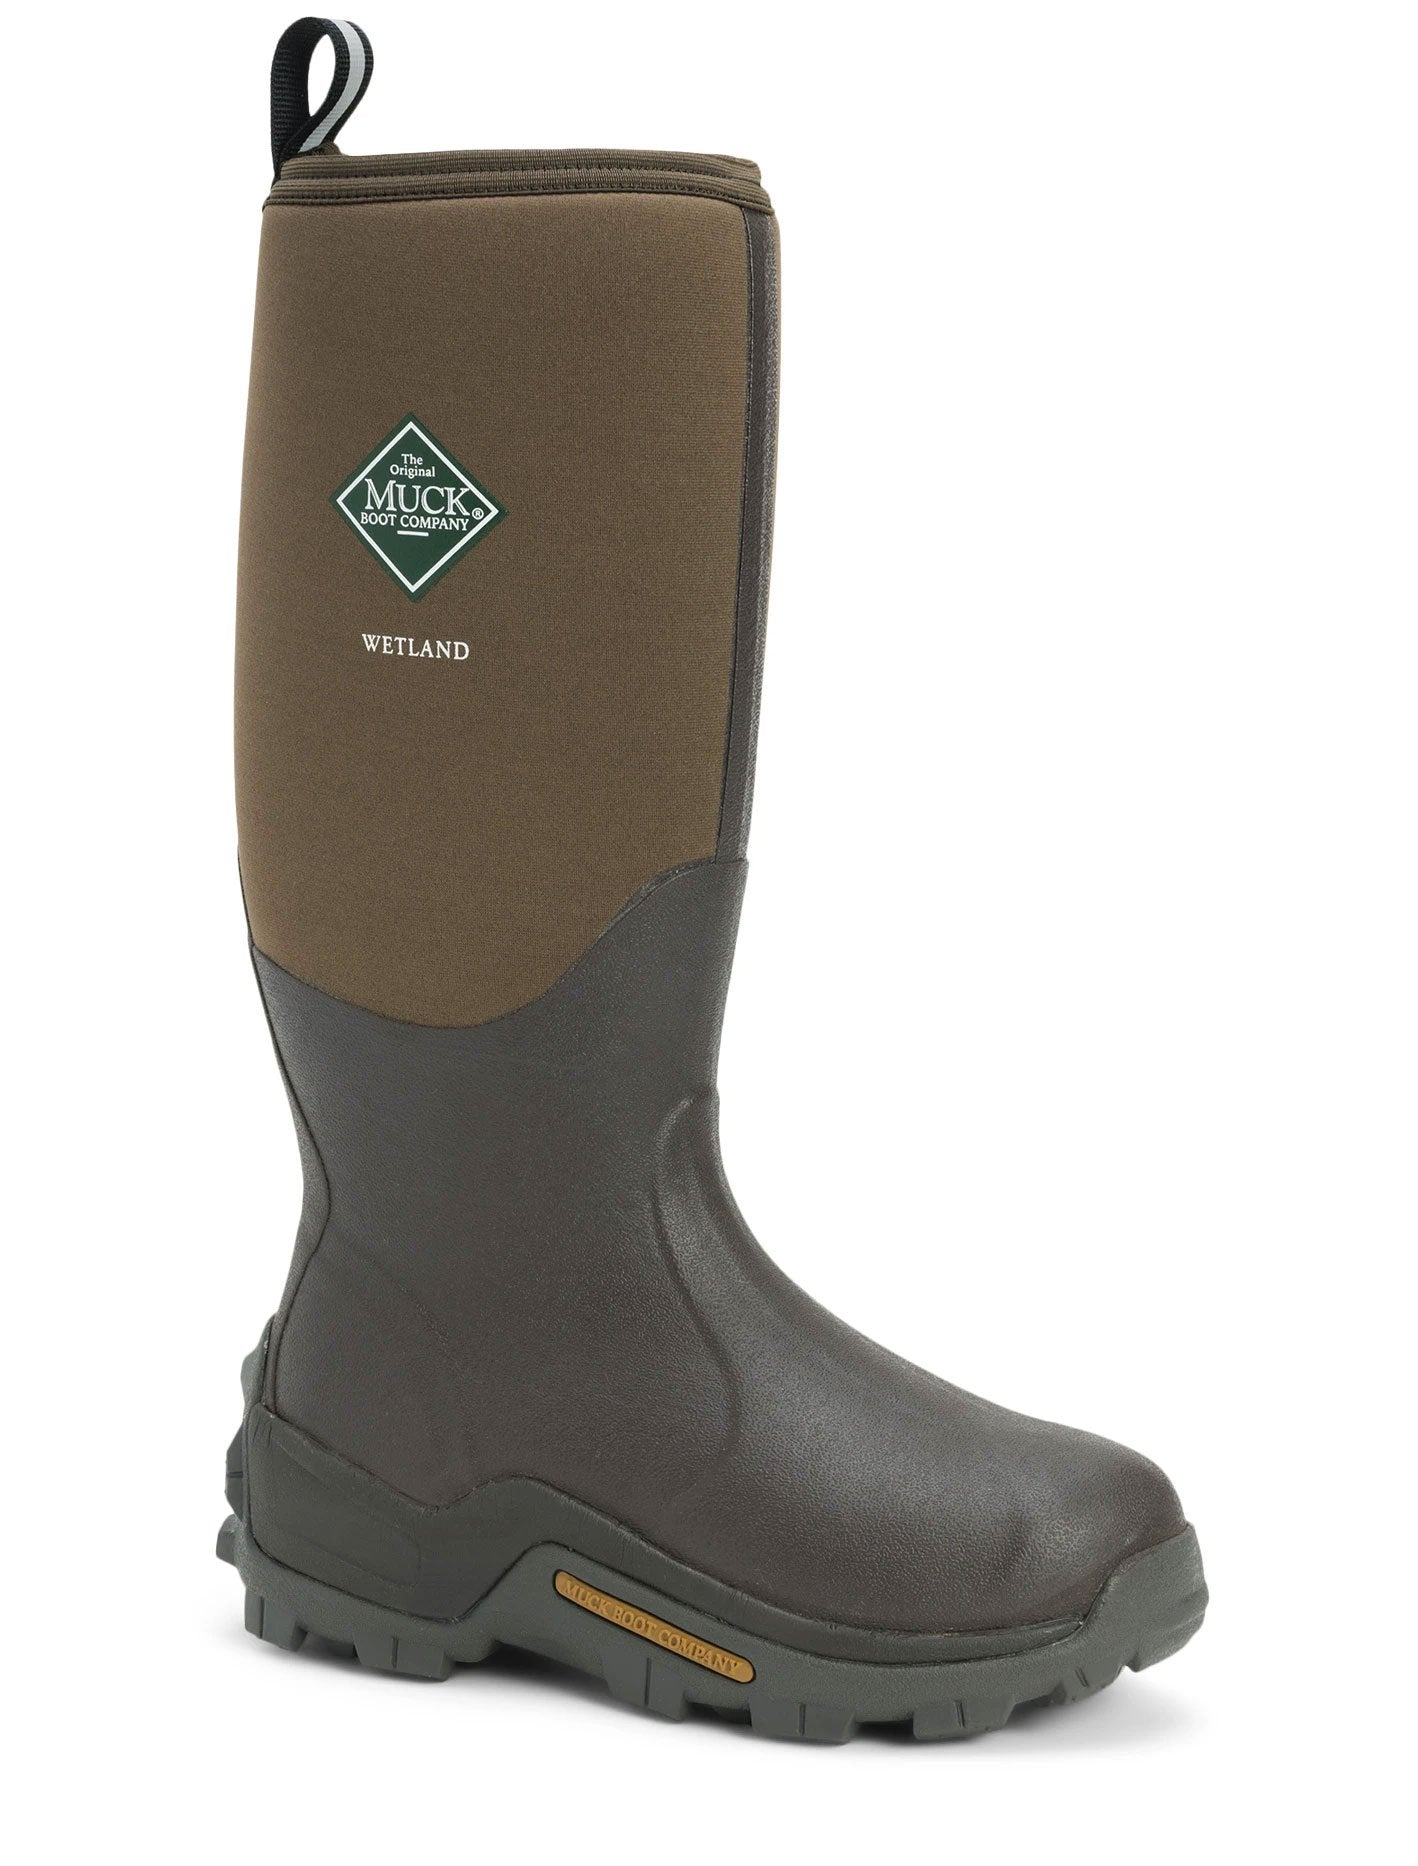 Right side Wetland Wellingtons